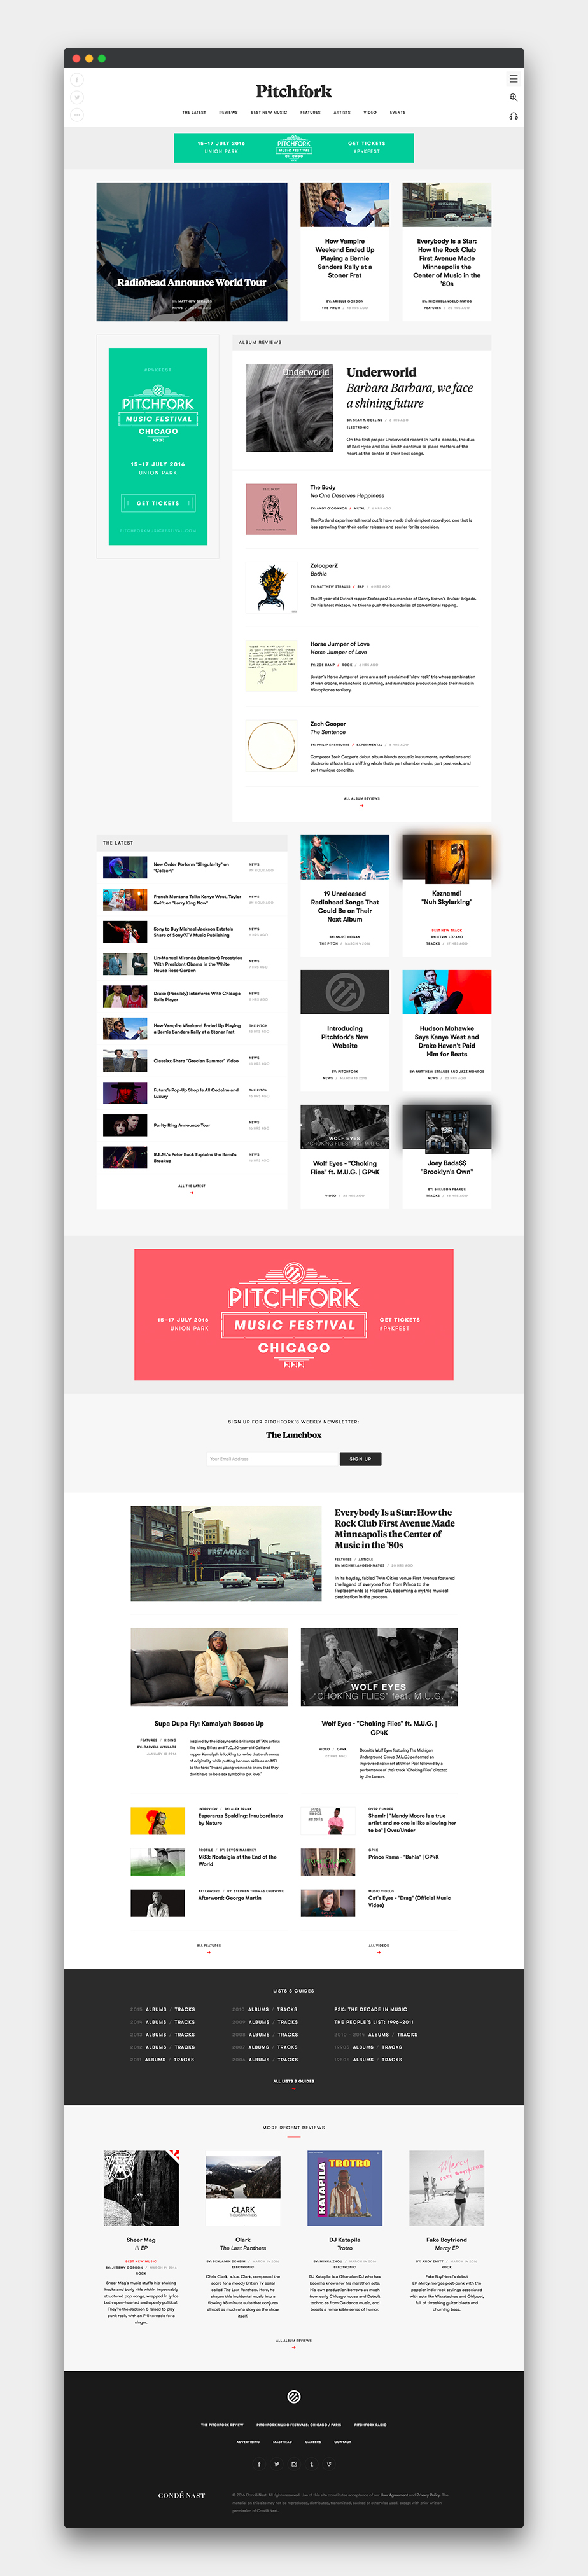 homepage-outcome1.png